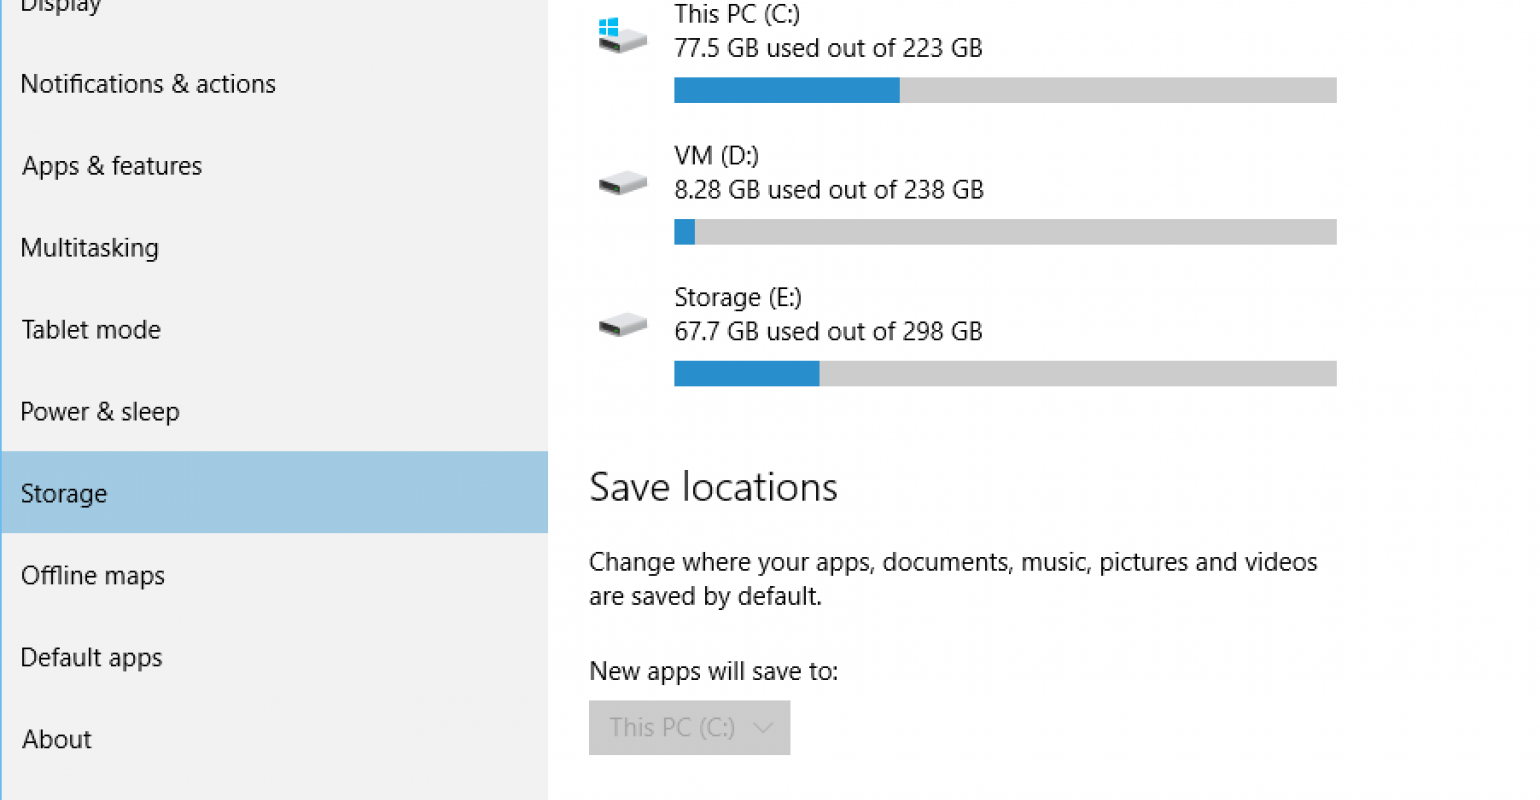 How to change your default save locations on Windows 10 | IT Pro